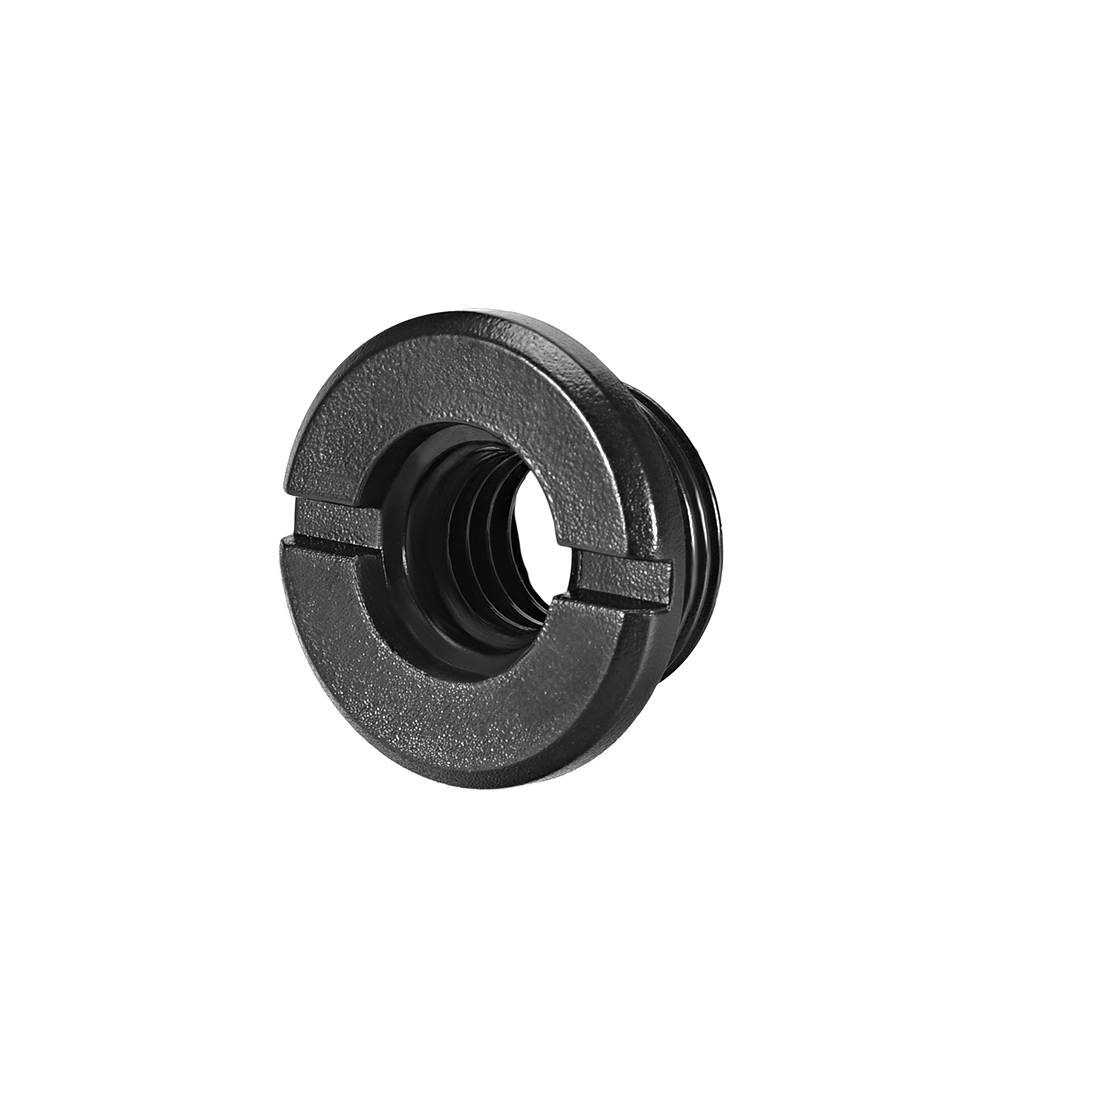 """3/8 Female To 5/8"""" Male Threaded Screw Adapter For Mic Stand Plastic 1pcs"""